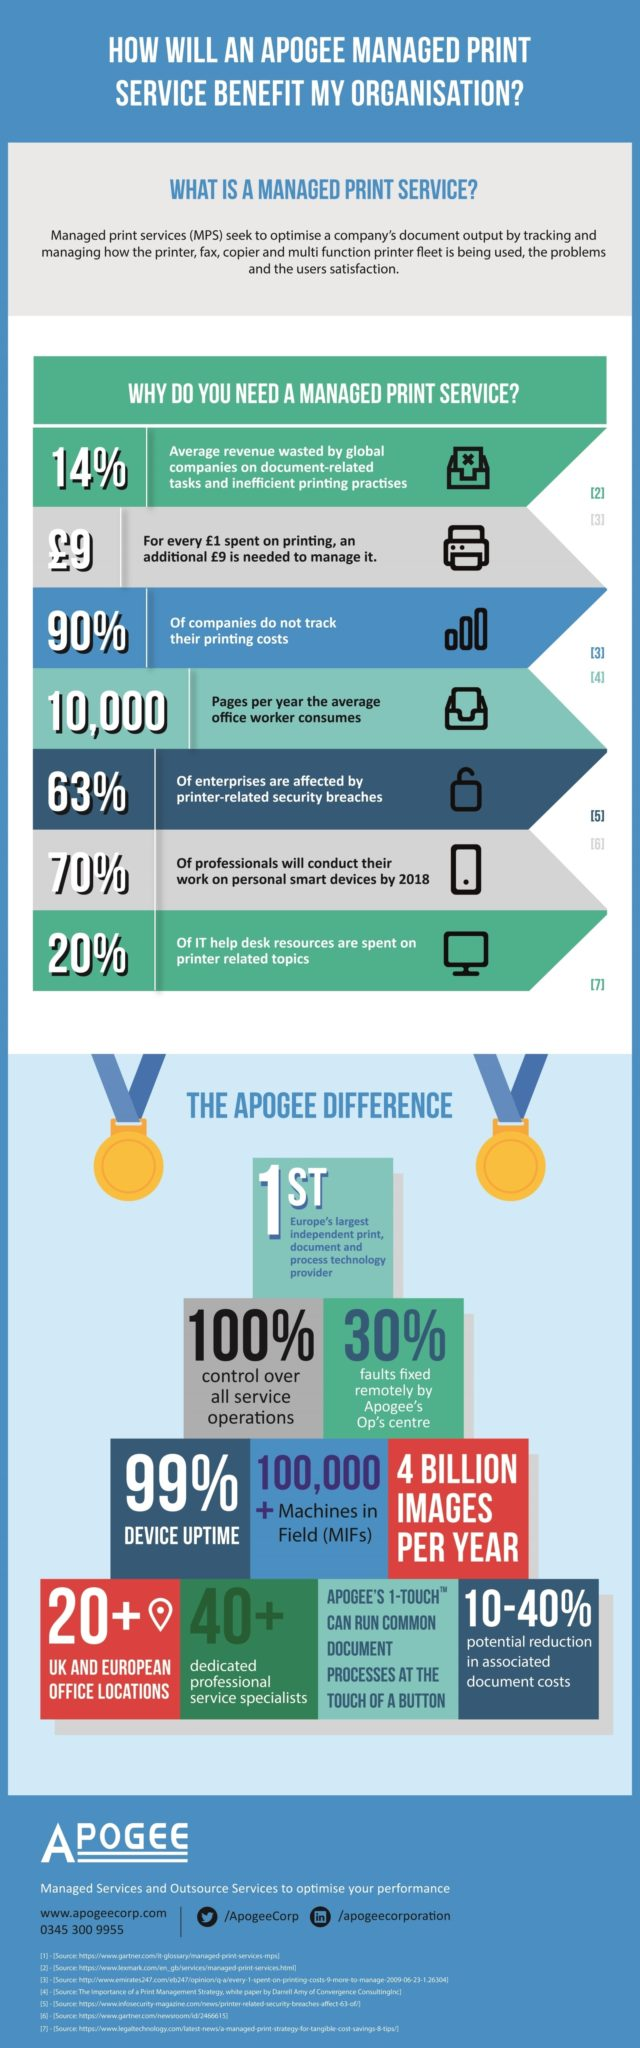 Managed-Print-Services-Benefits-Apogee-infographic-plaza